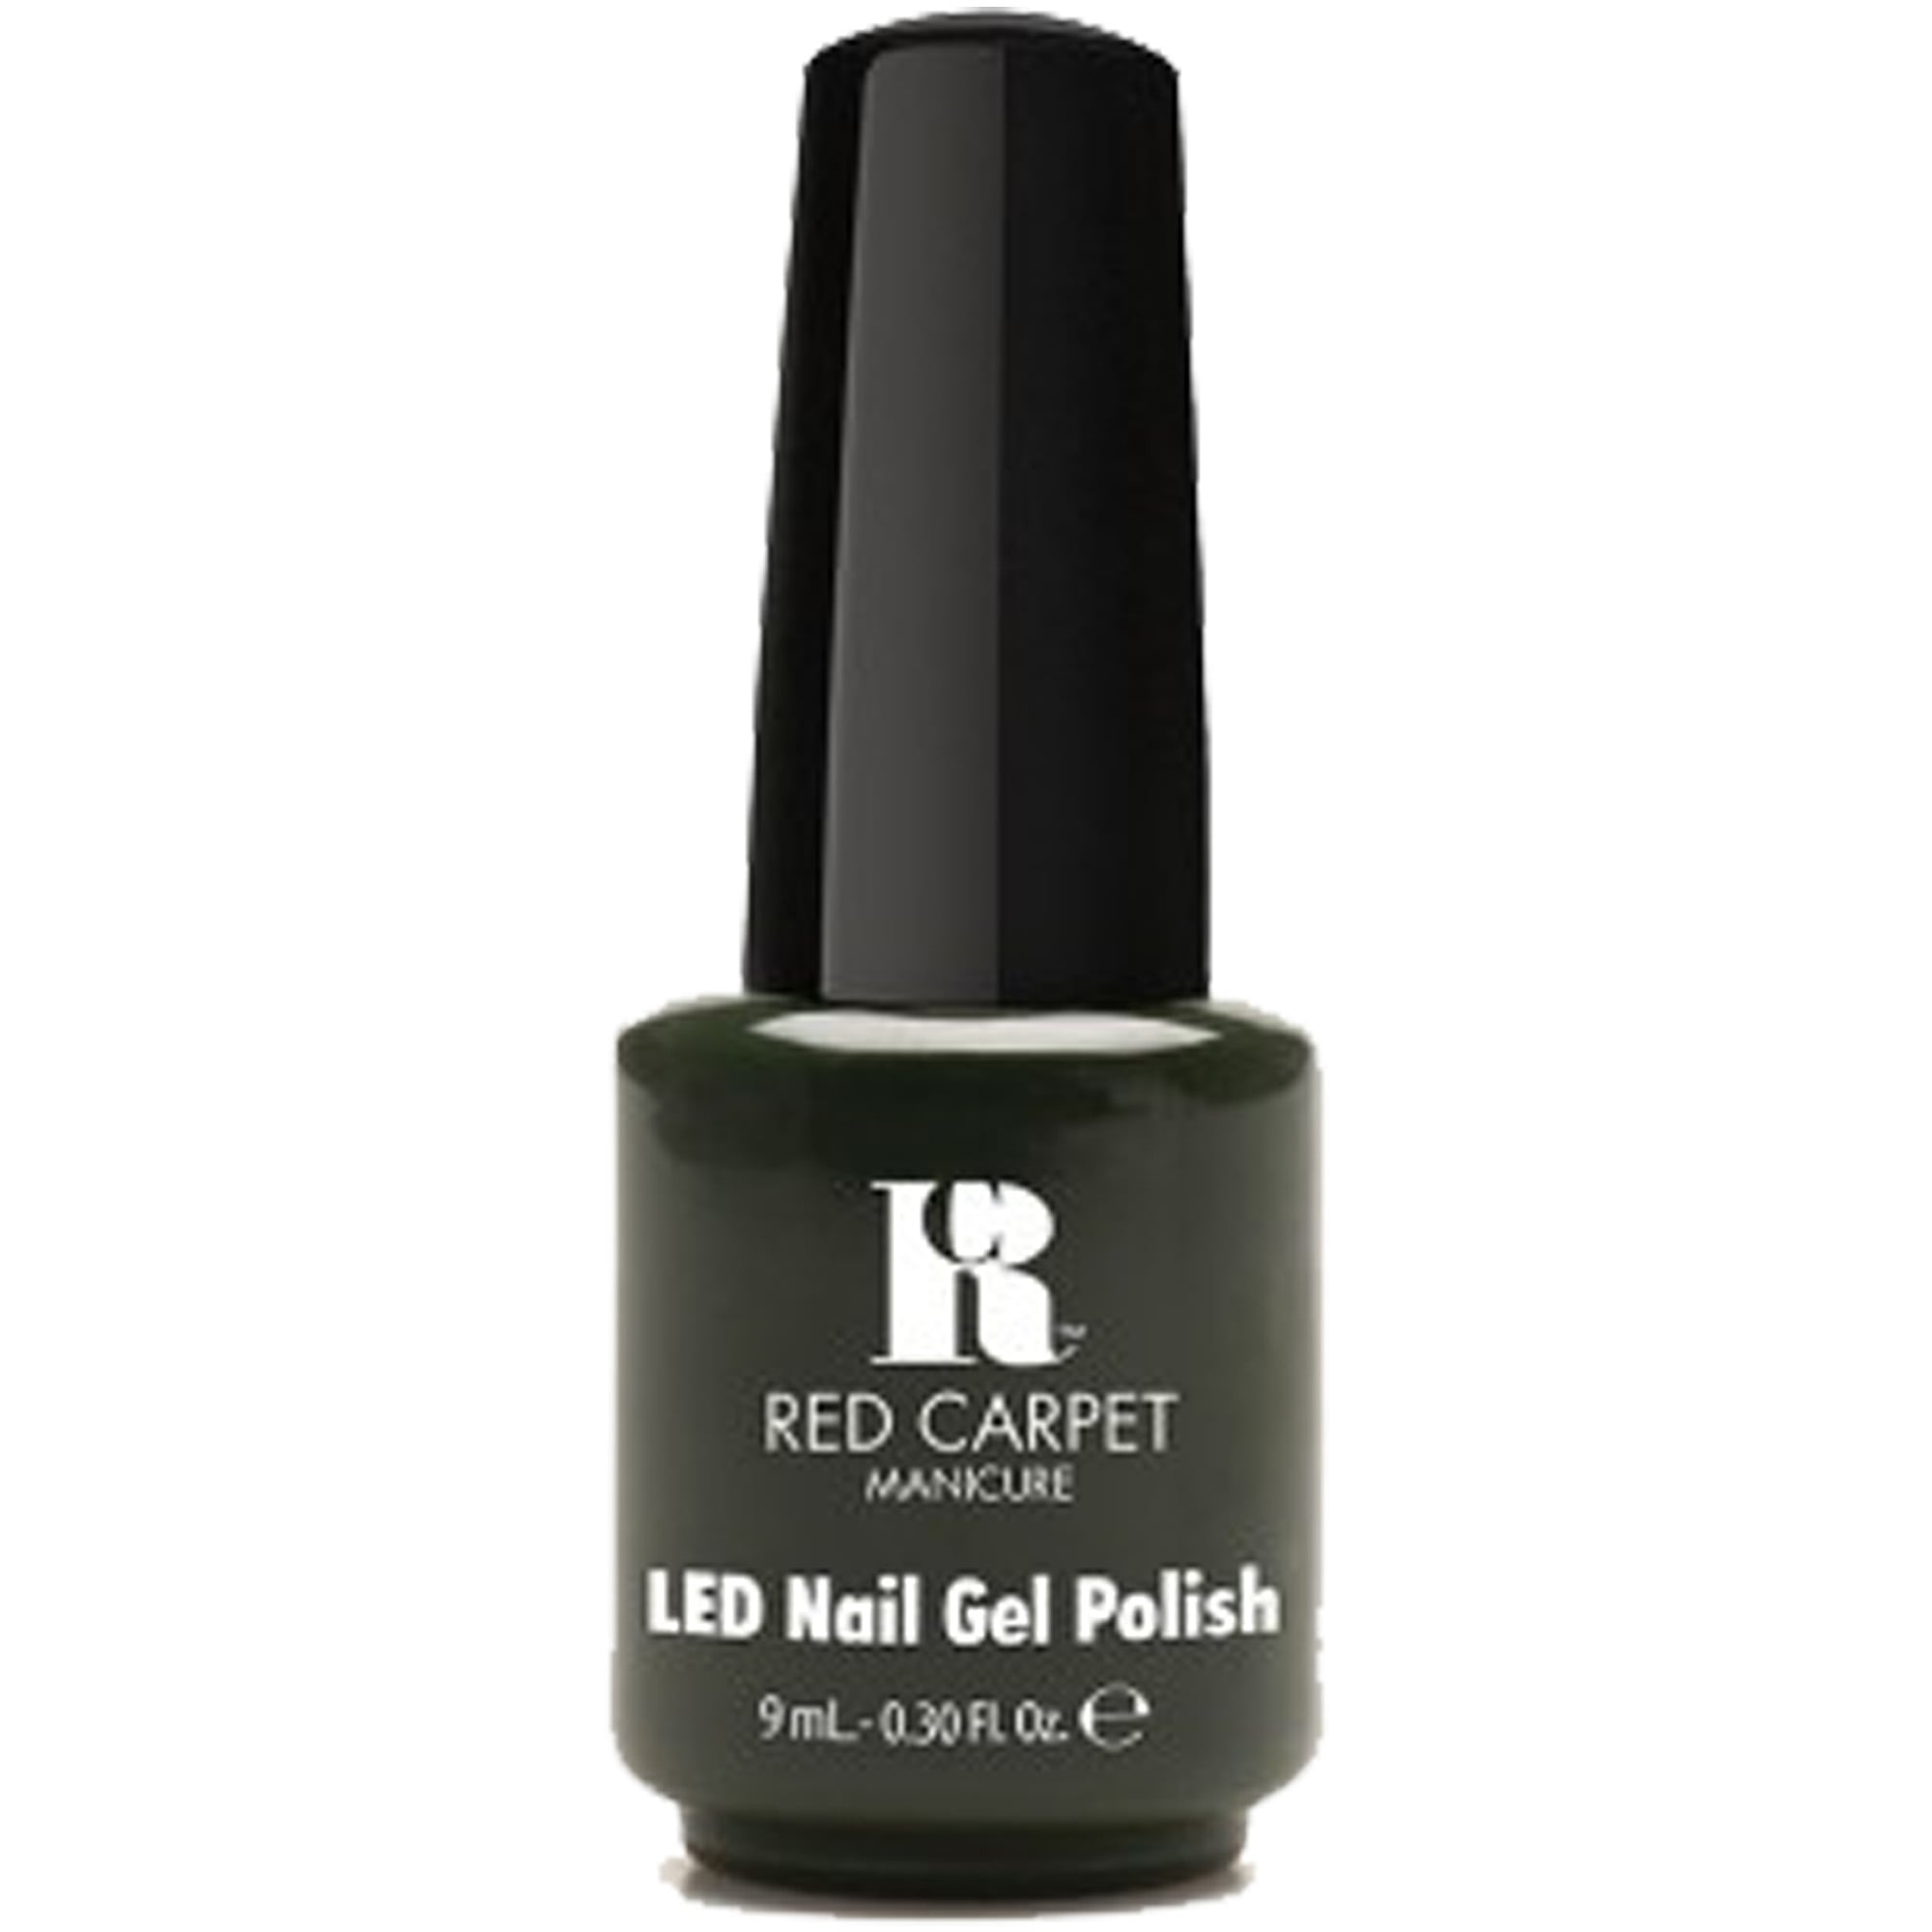 Red Carpet LED Gel Nail Polish - Diva in Disguise 9ml | Professional